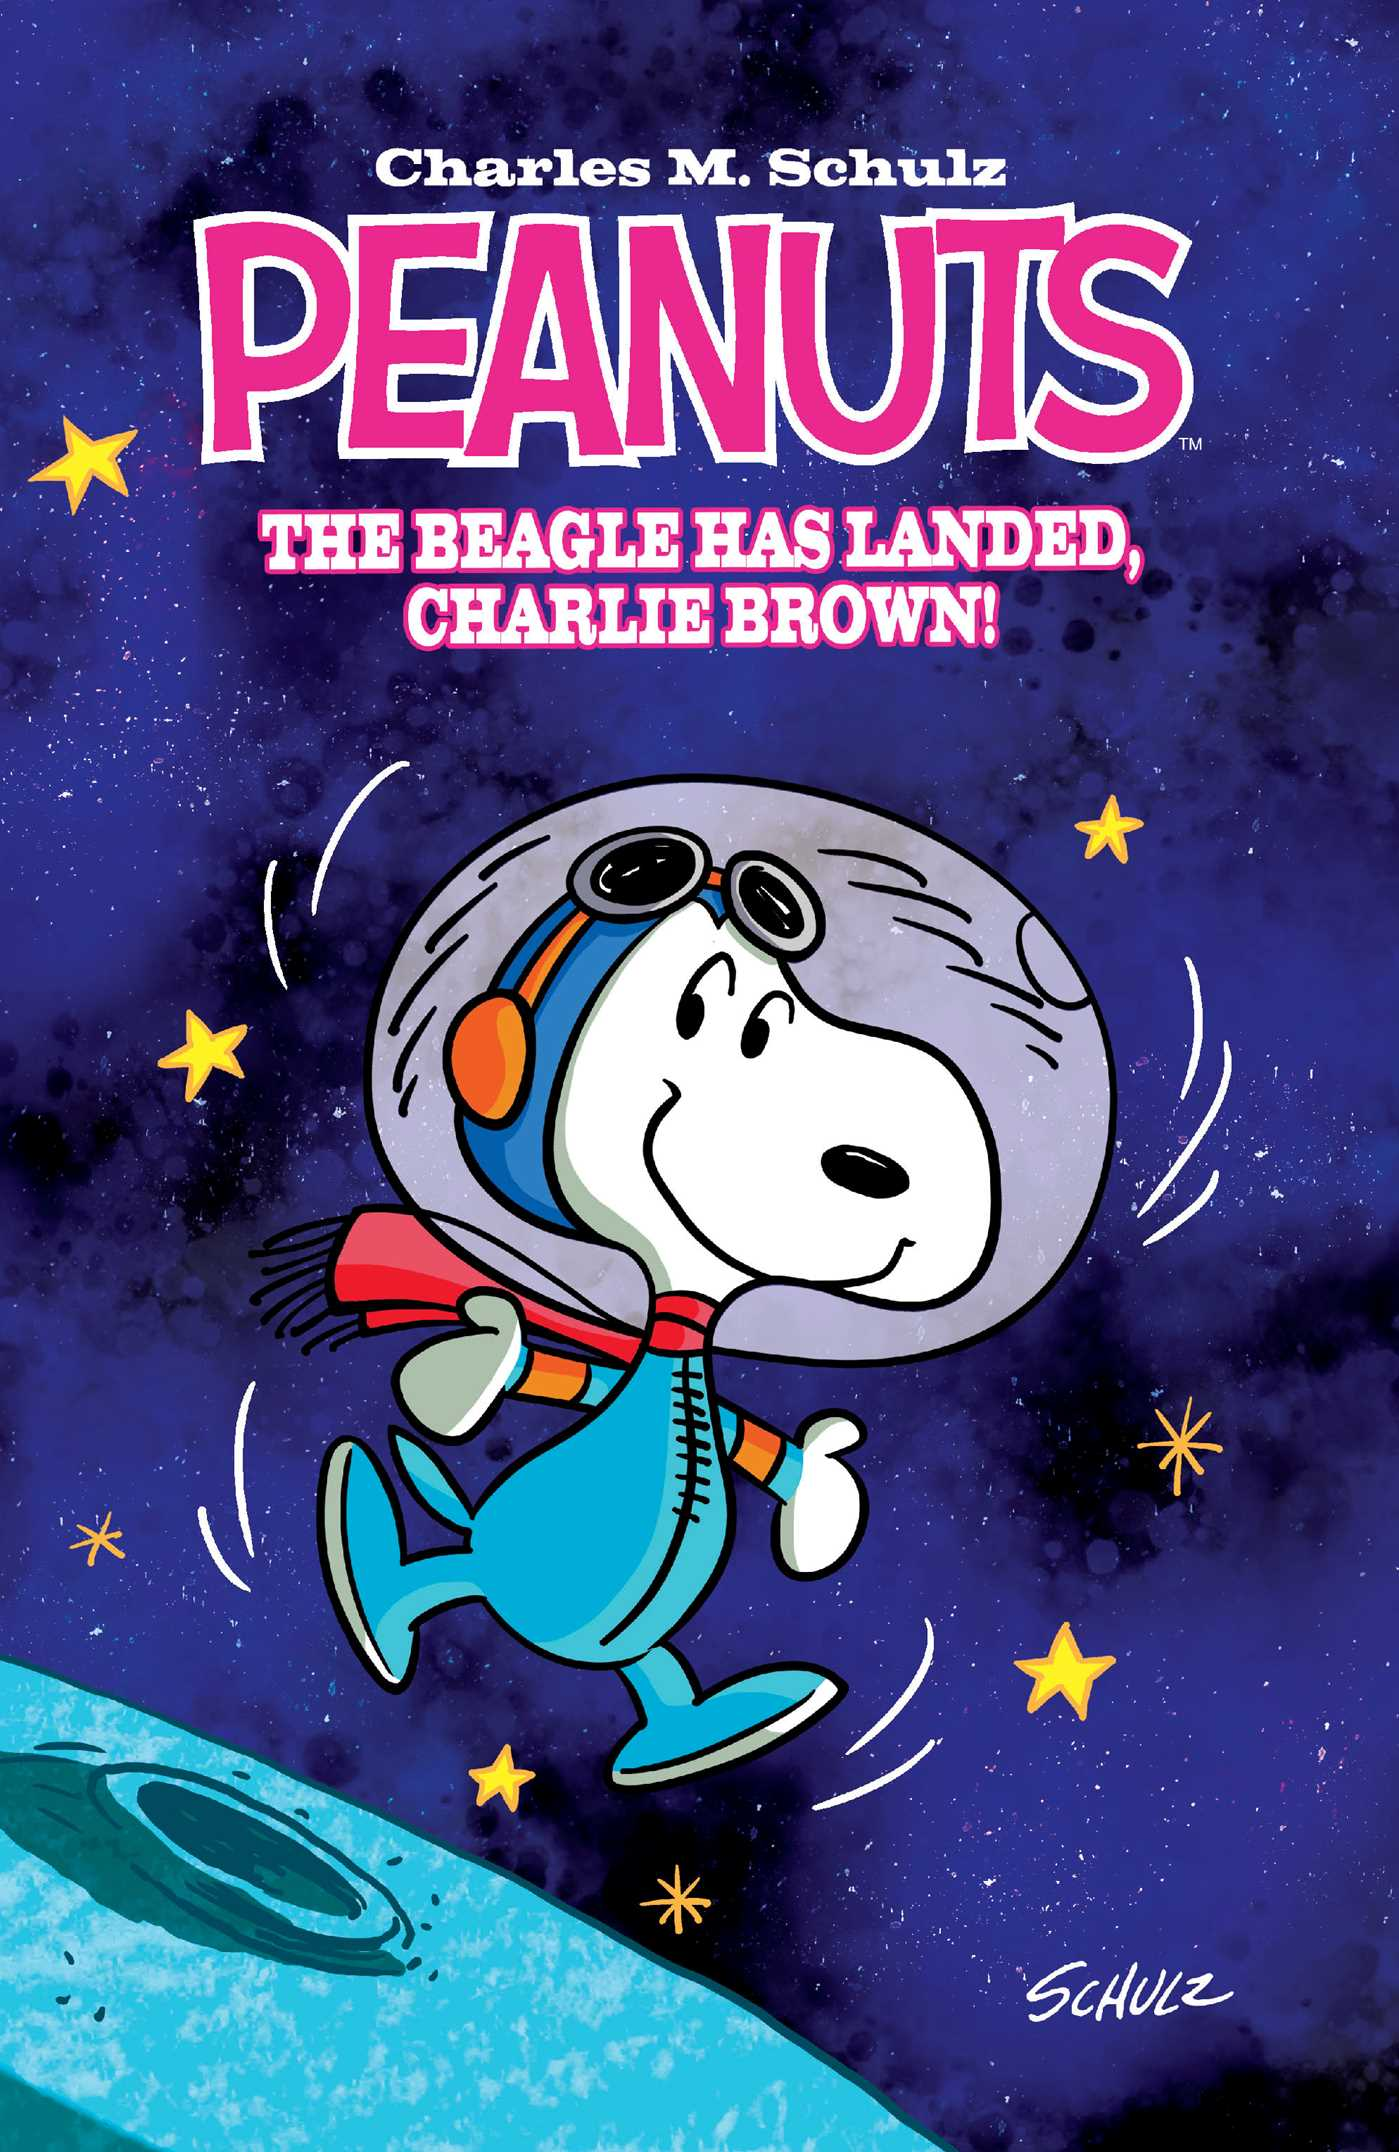 Peanuts-the-beagle-has-landed-charlie-brown-9781608863341_hr